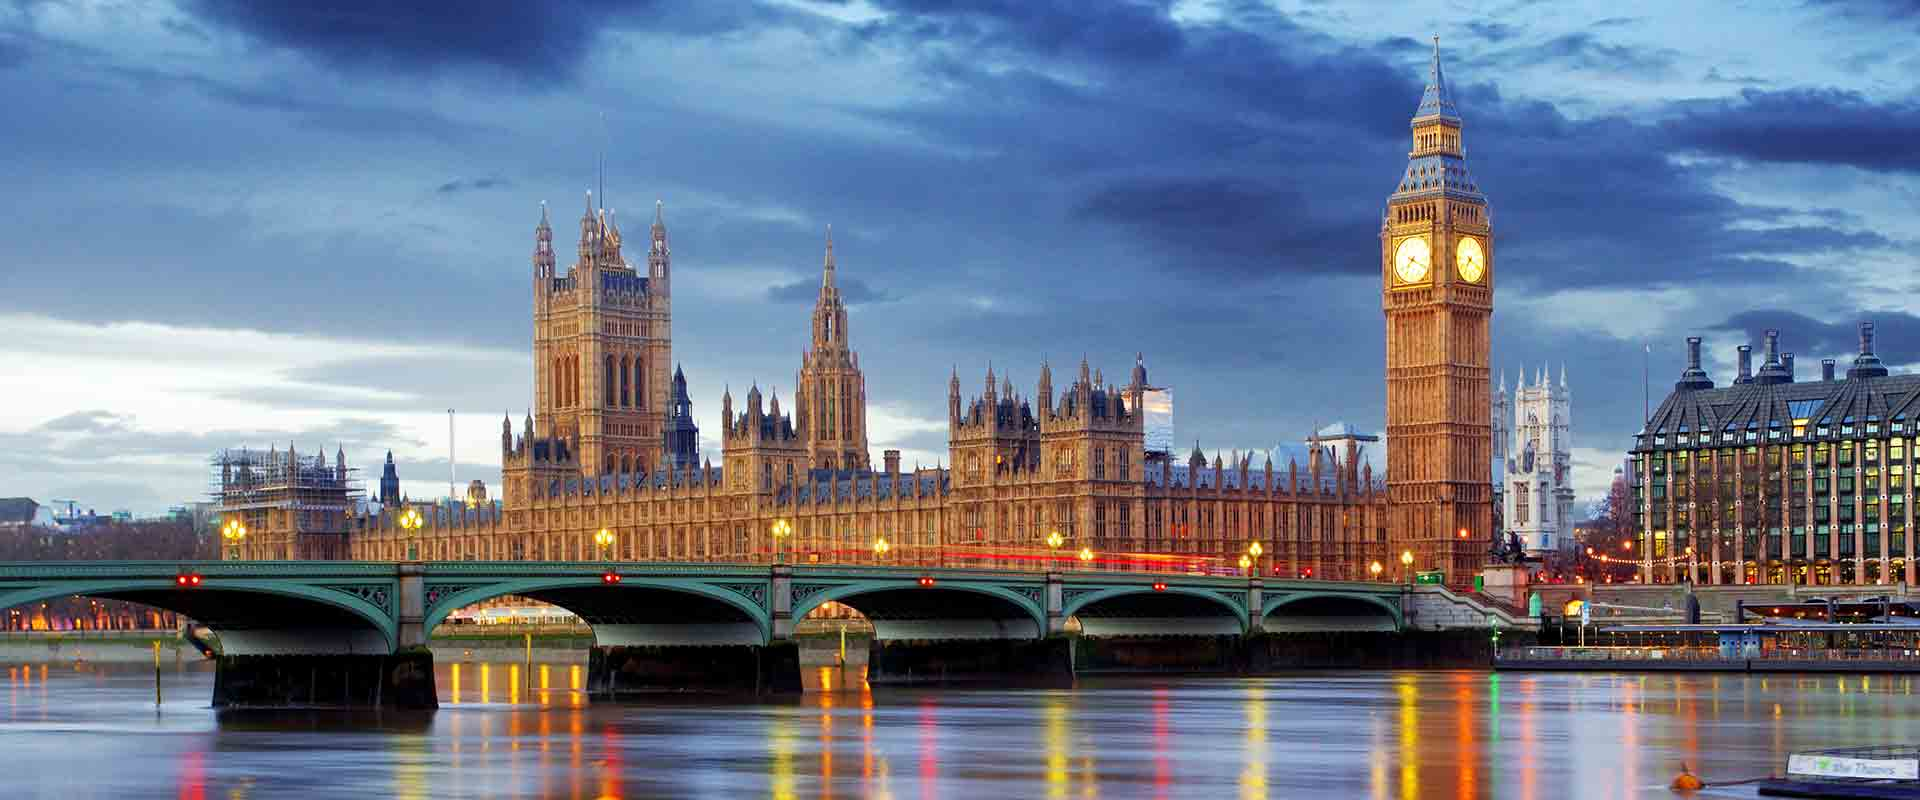 felix-reisen-busreisen-stage-grossbritannien-london-big-ben-and-houses-of-parliament-62913588